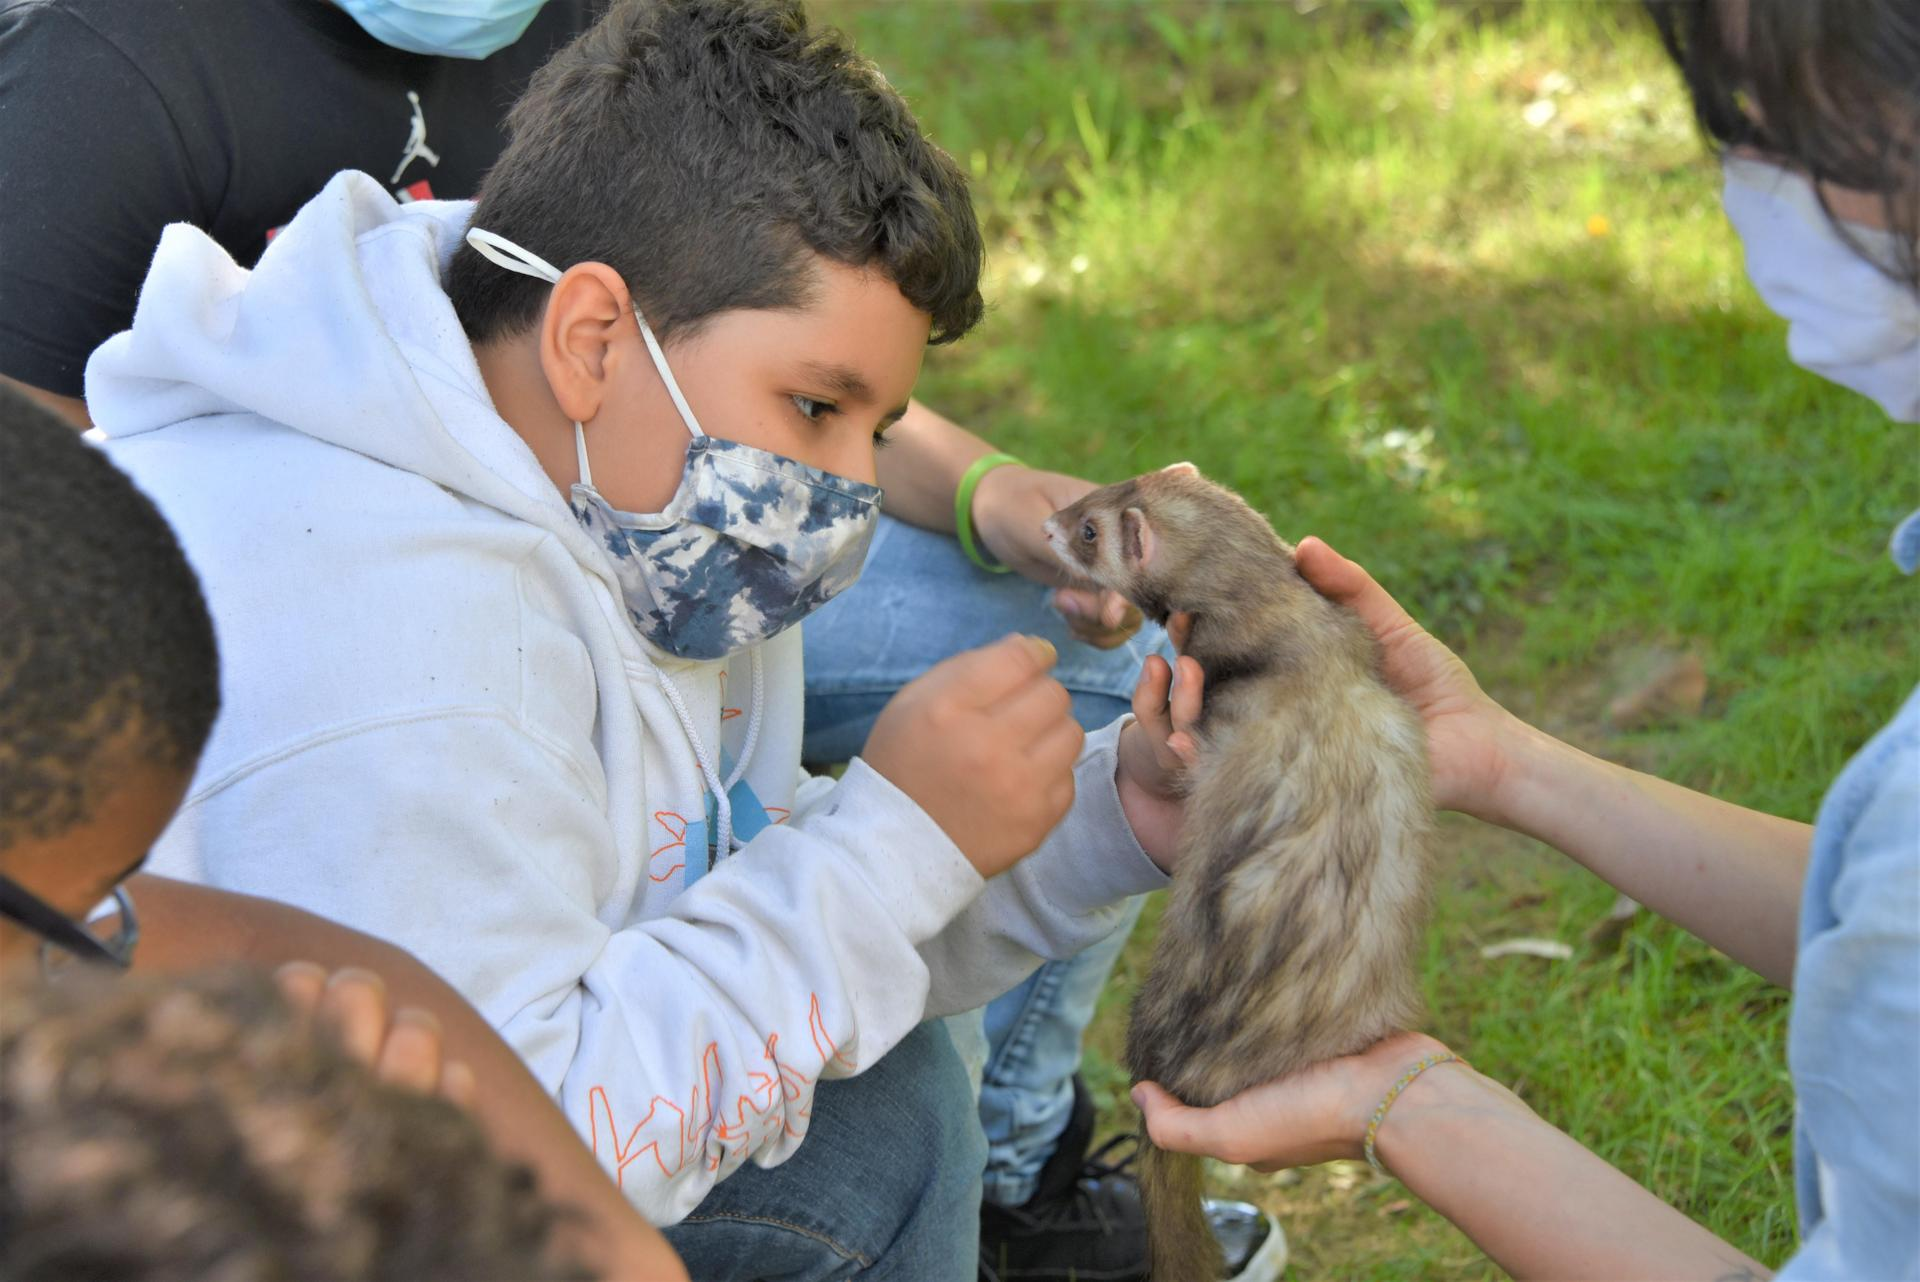 A student is petting a ferret